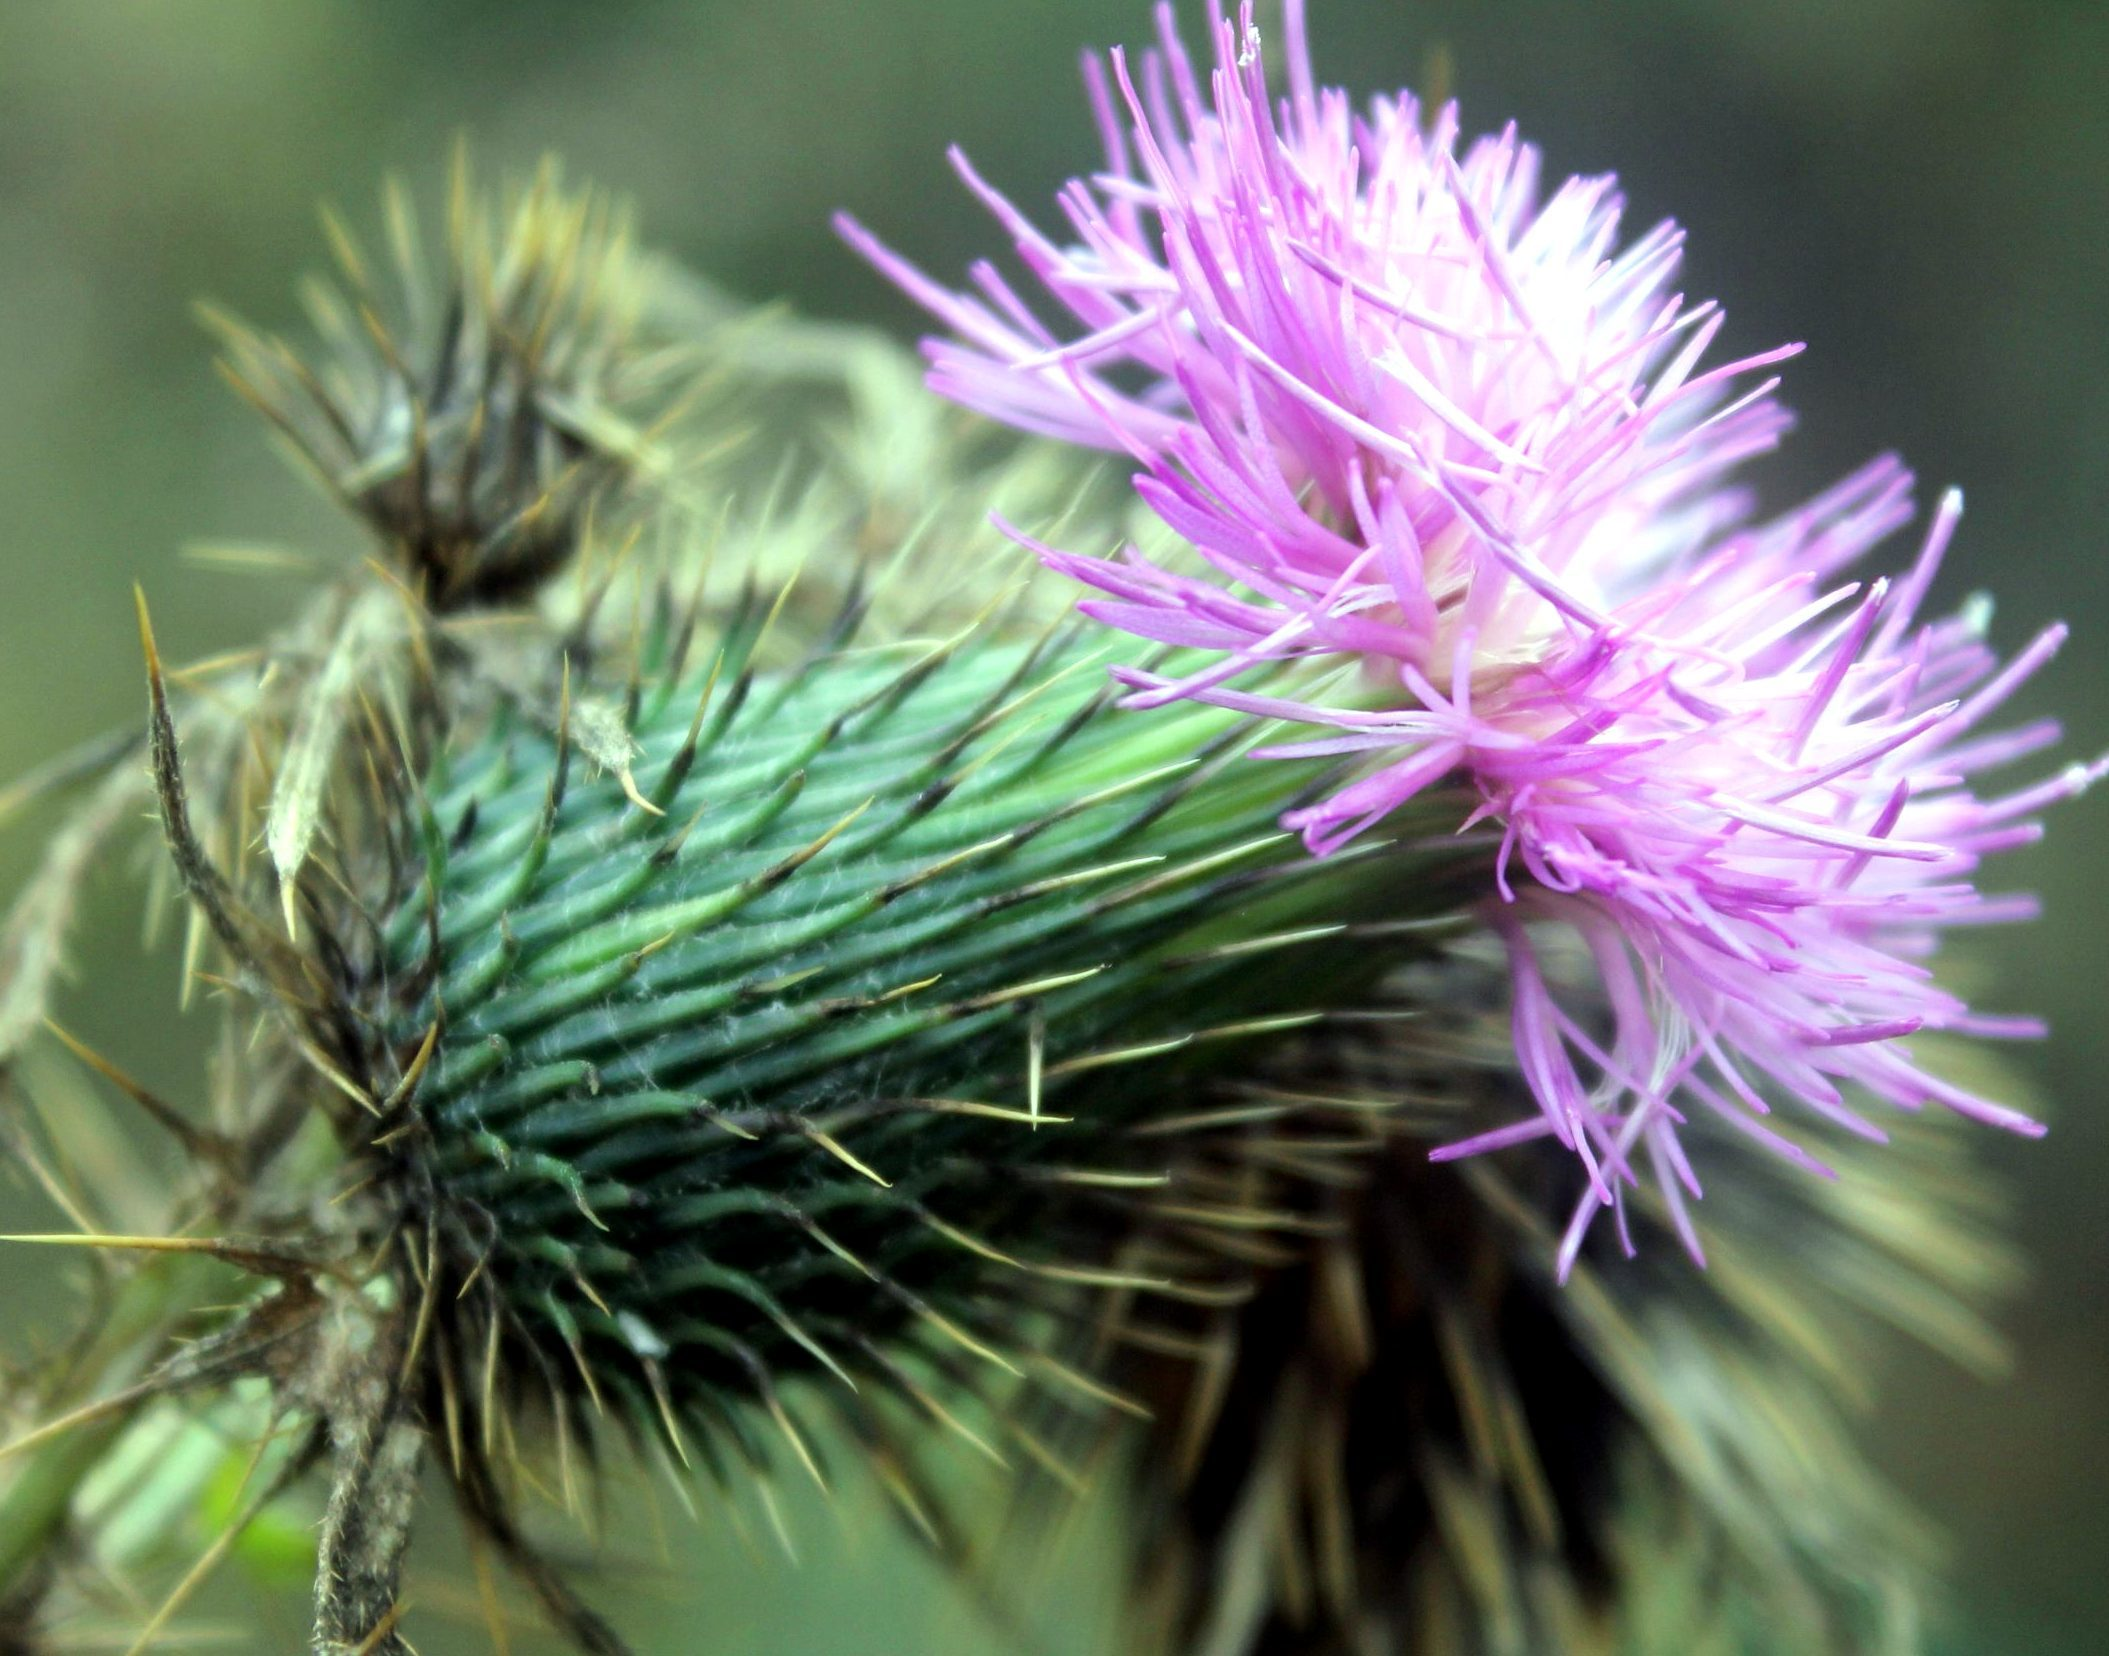 Free picture thistle flower thorny purple flower thorns thistle flower thorny purple flower thorns mightylinksfo